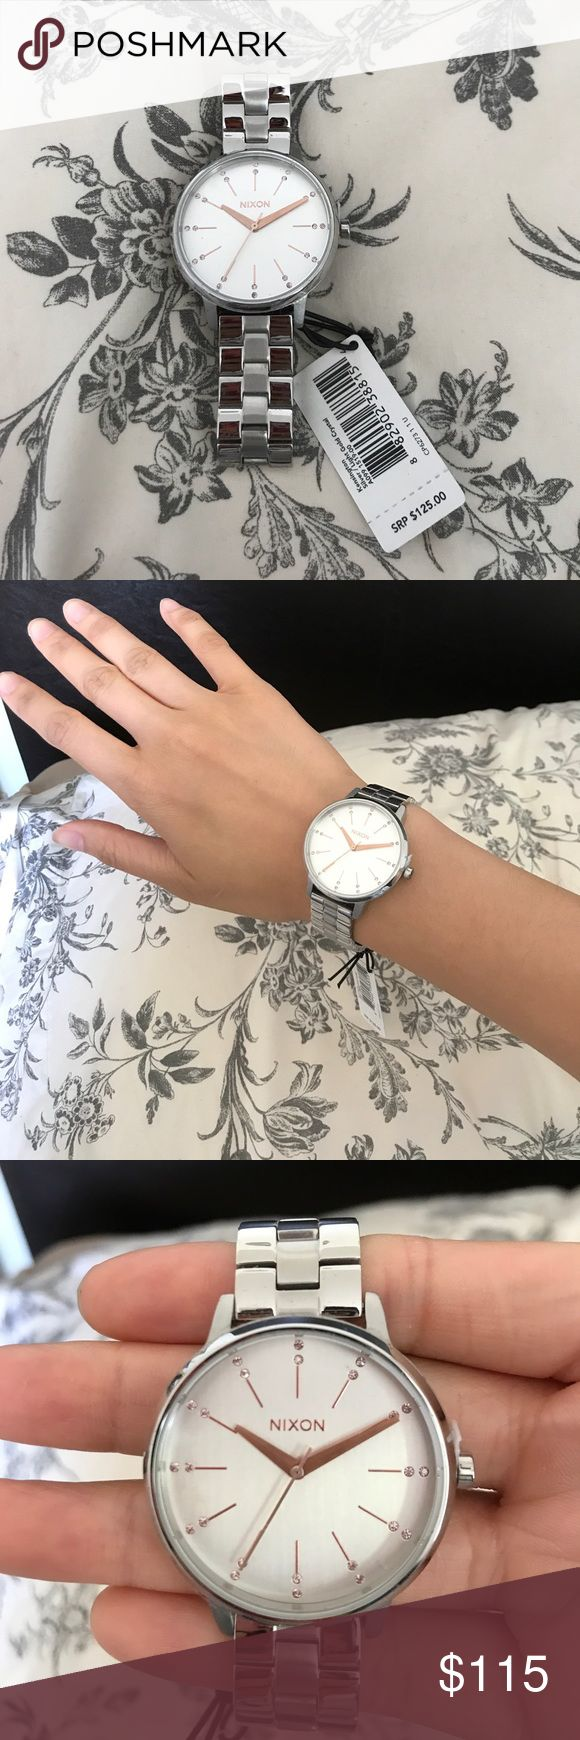 Nixon women's watch Brand new with tags Nixon watch. Silver with rose gold detailing on the face of the watch. Classic with a touch of girlish charm! Nixon Jewelry